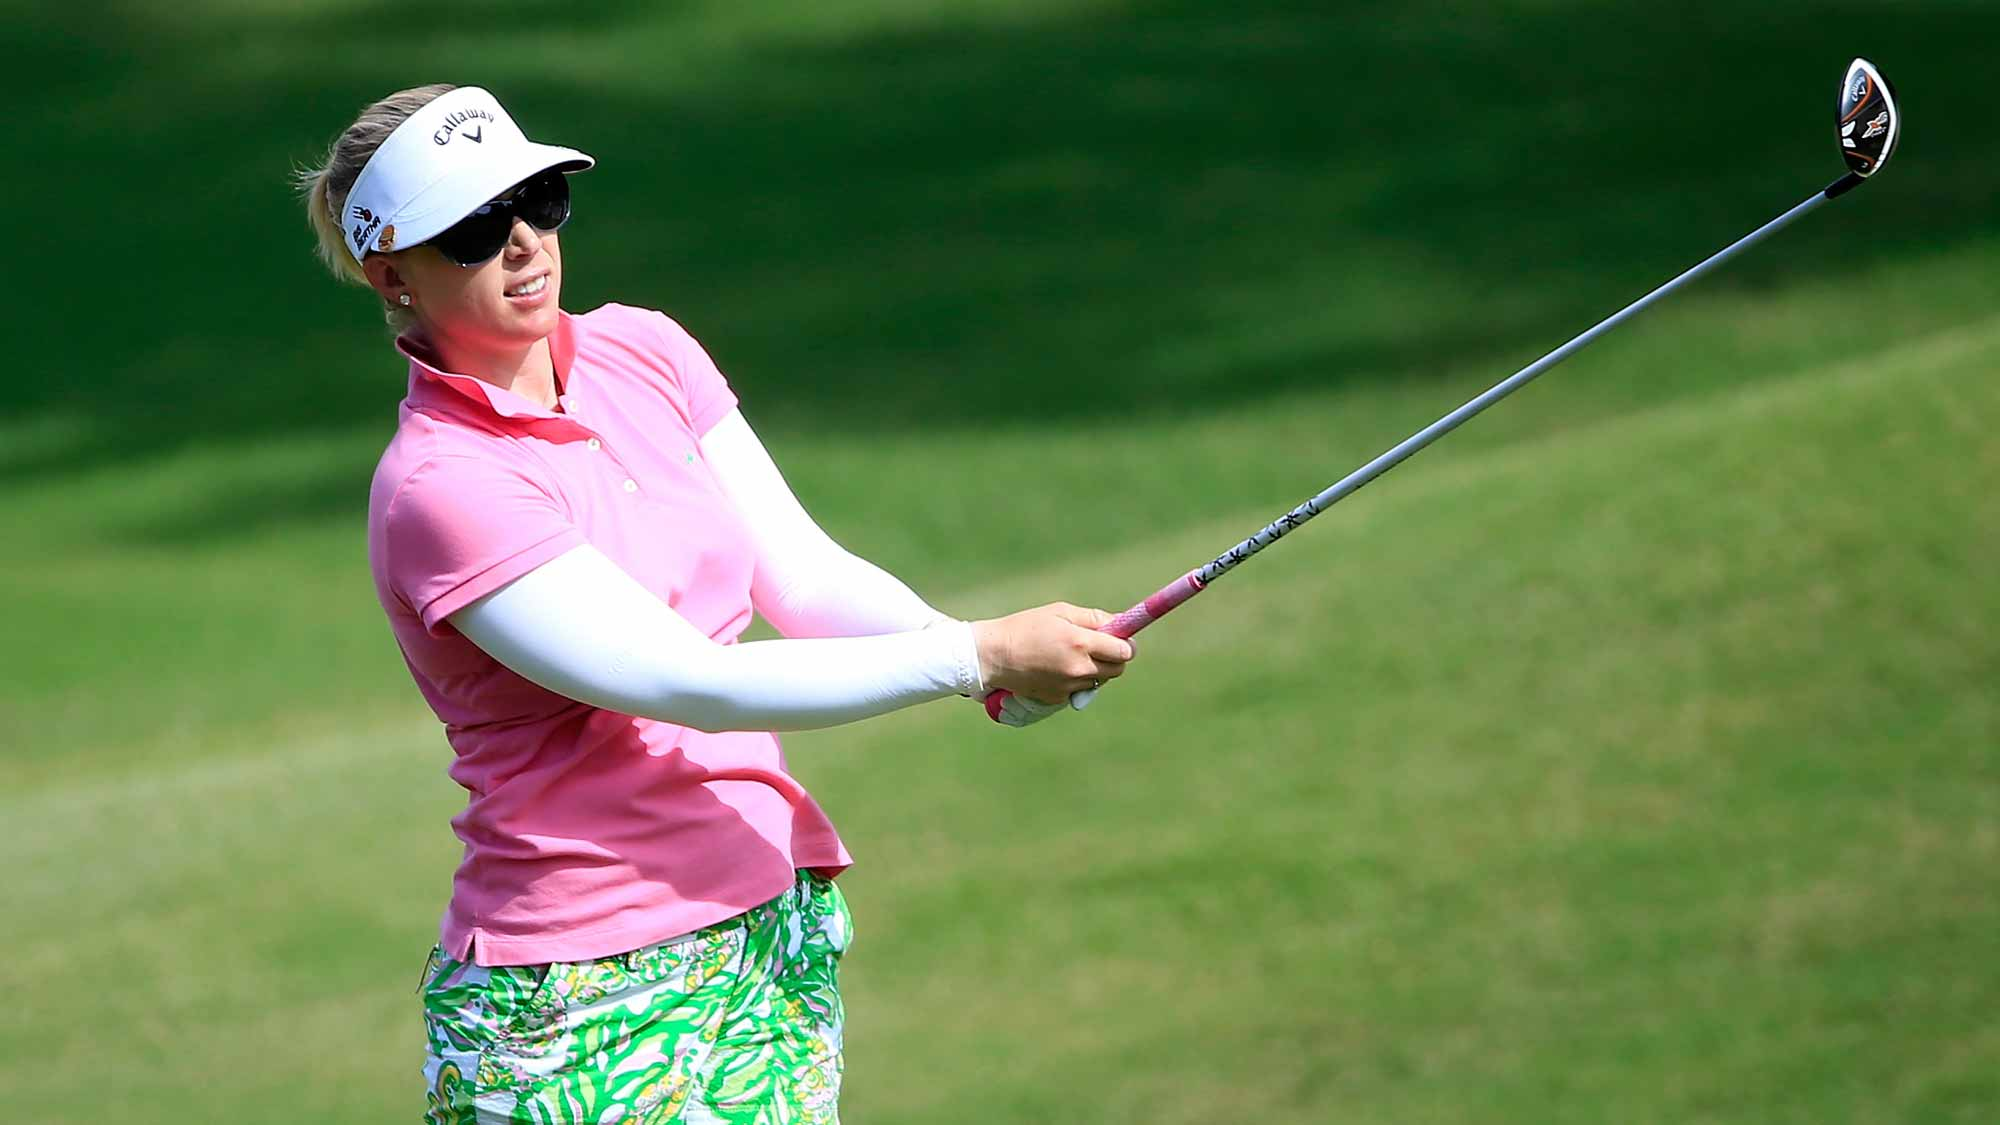 Morgan Pressel of the United States plays a shot on the seventh hole during the first round of the Walmart NW Arkansas Championship Presented by P&G at Pinnacle Country Club